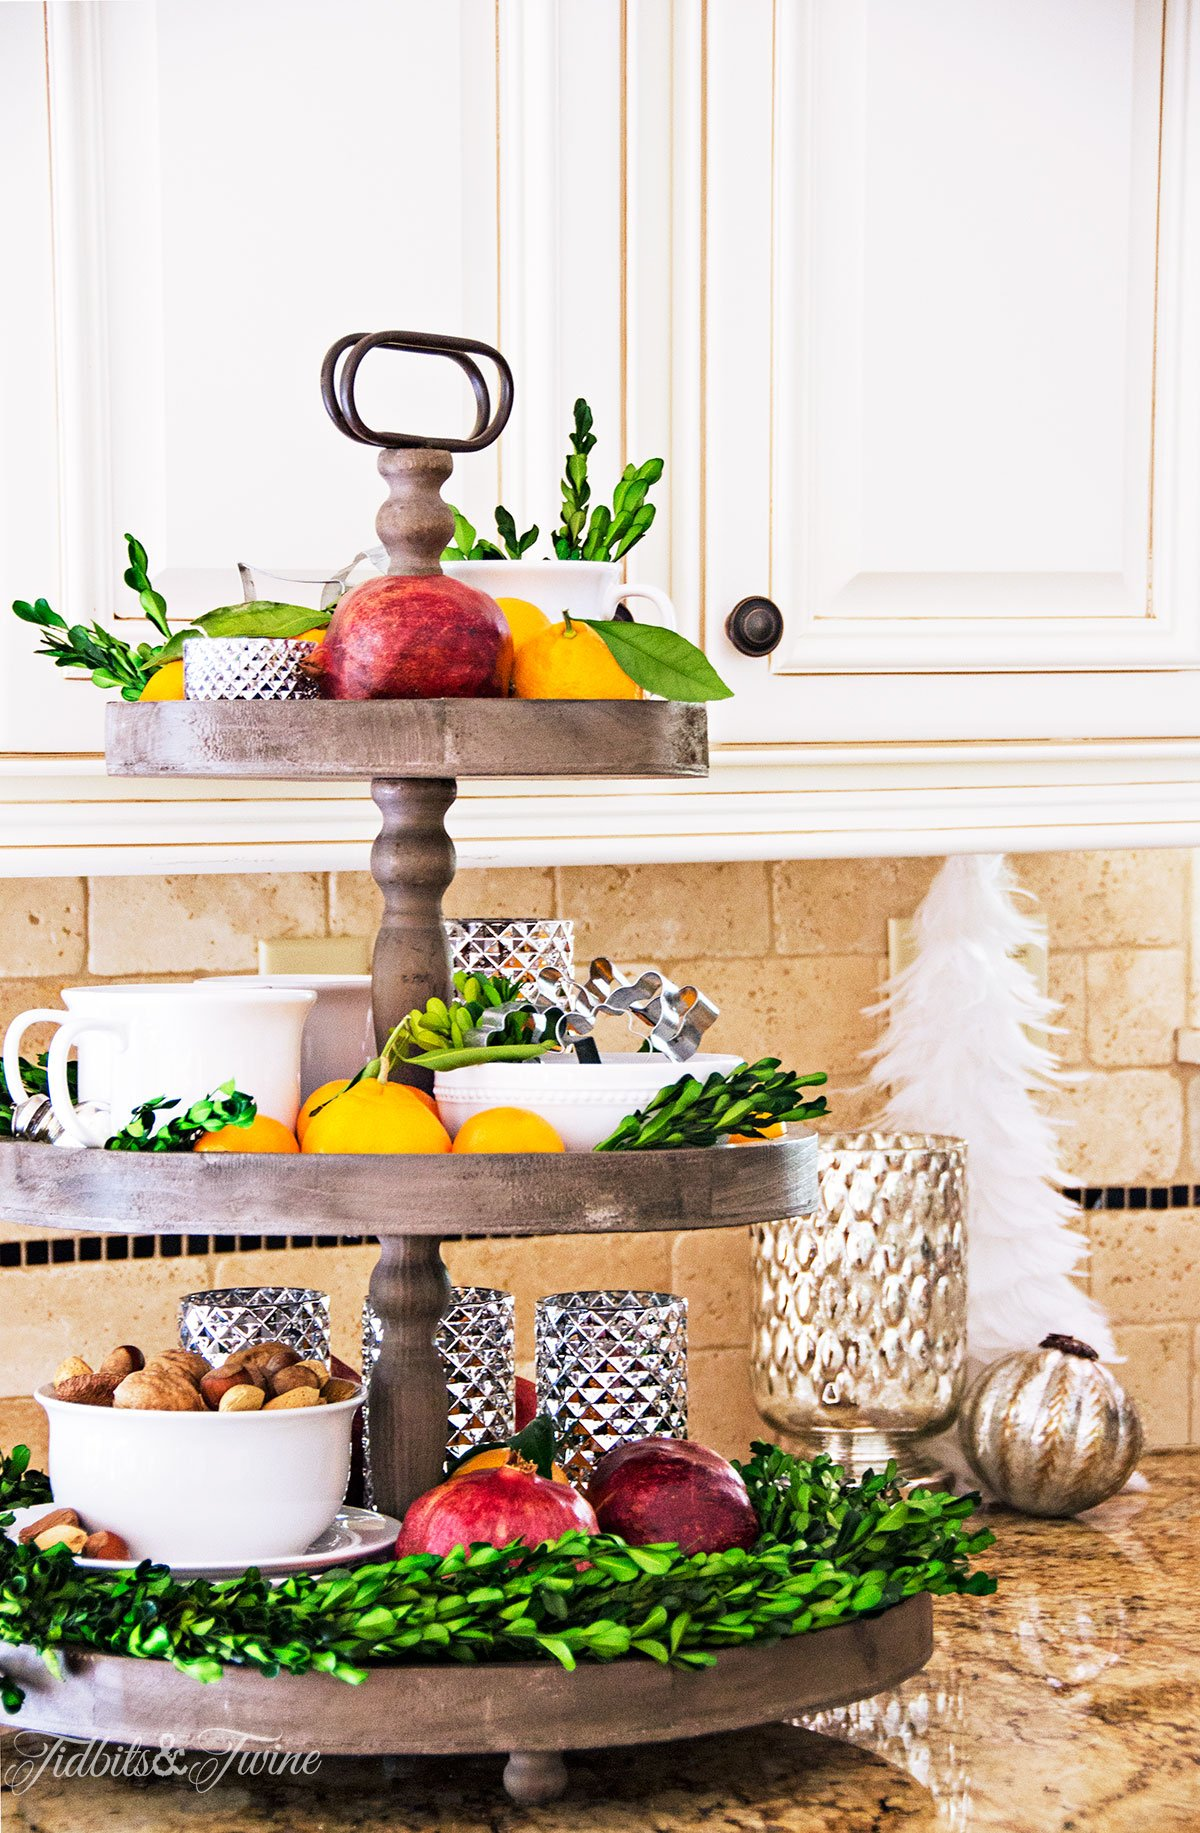 Rustic 3-tier Christmas kitchen display from Tidbits&Twine